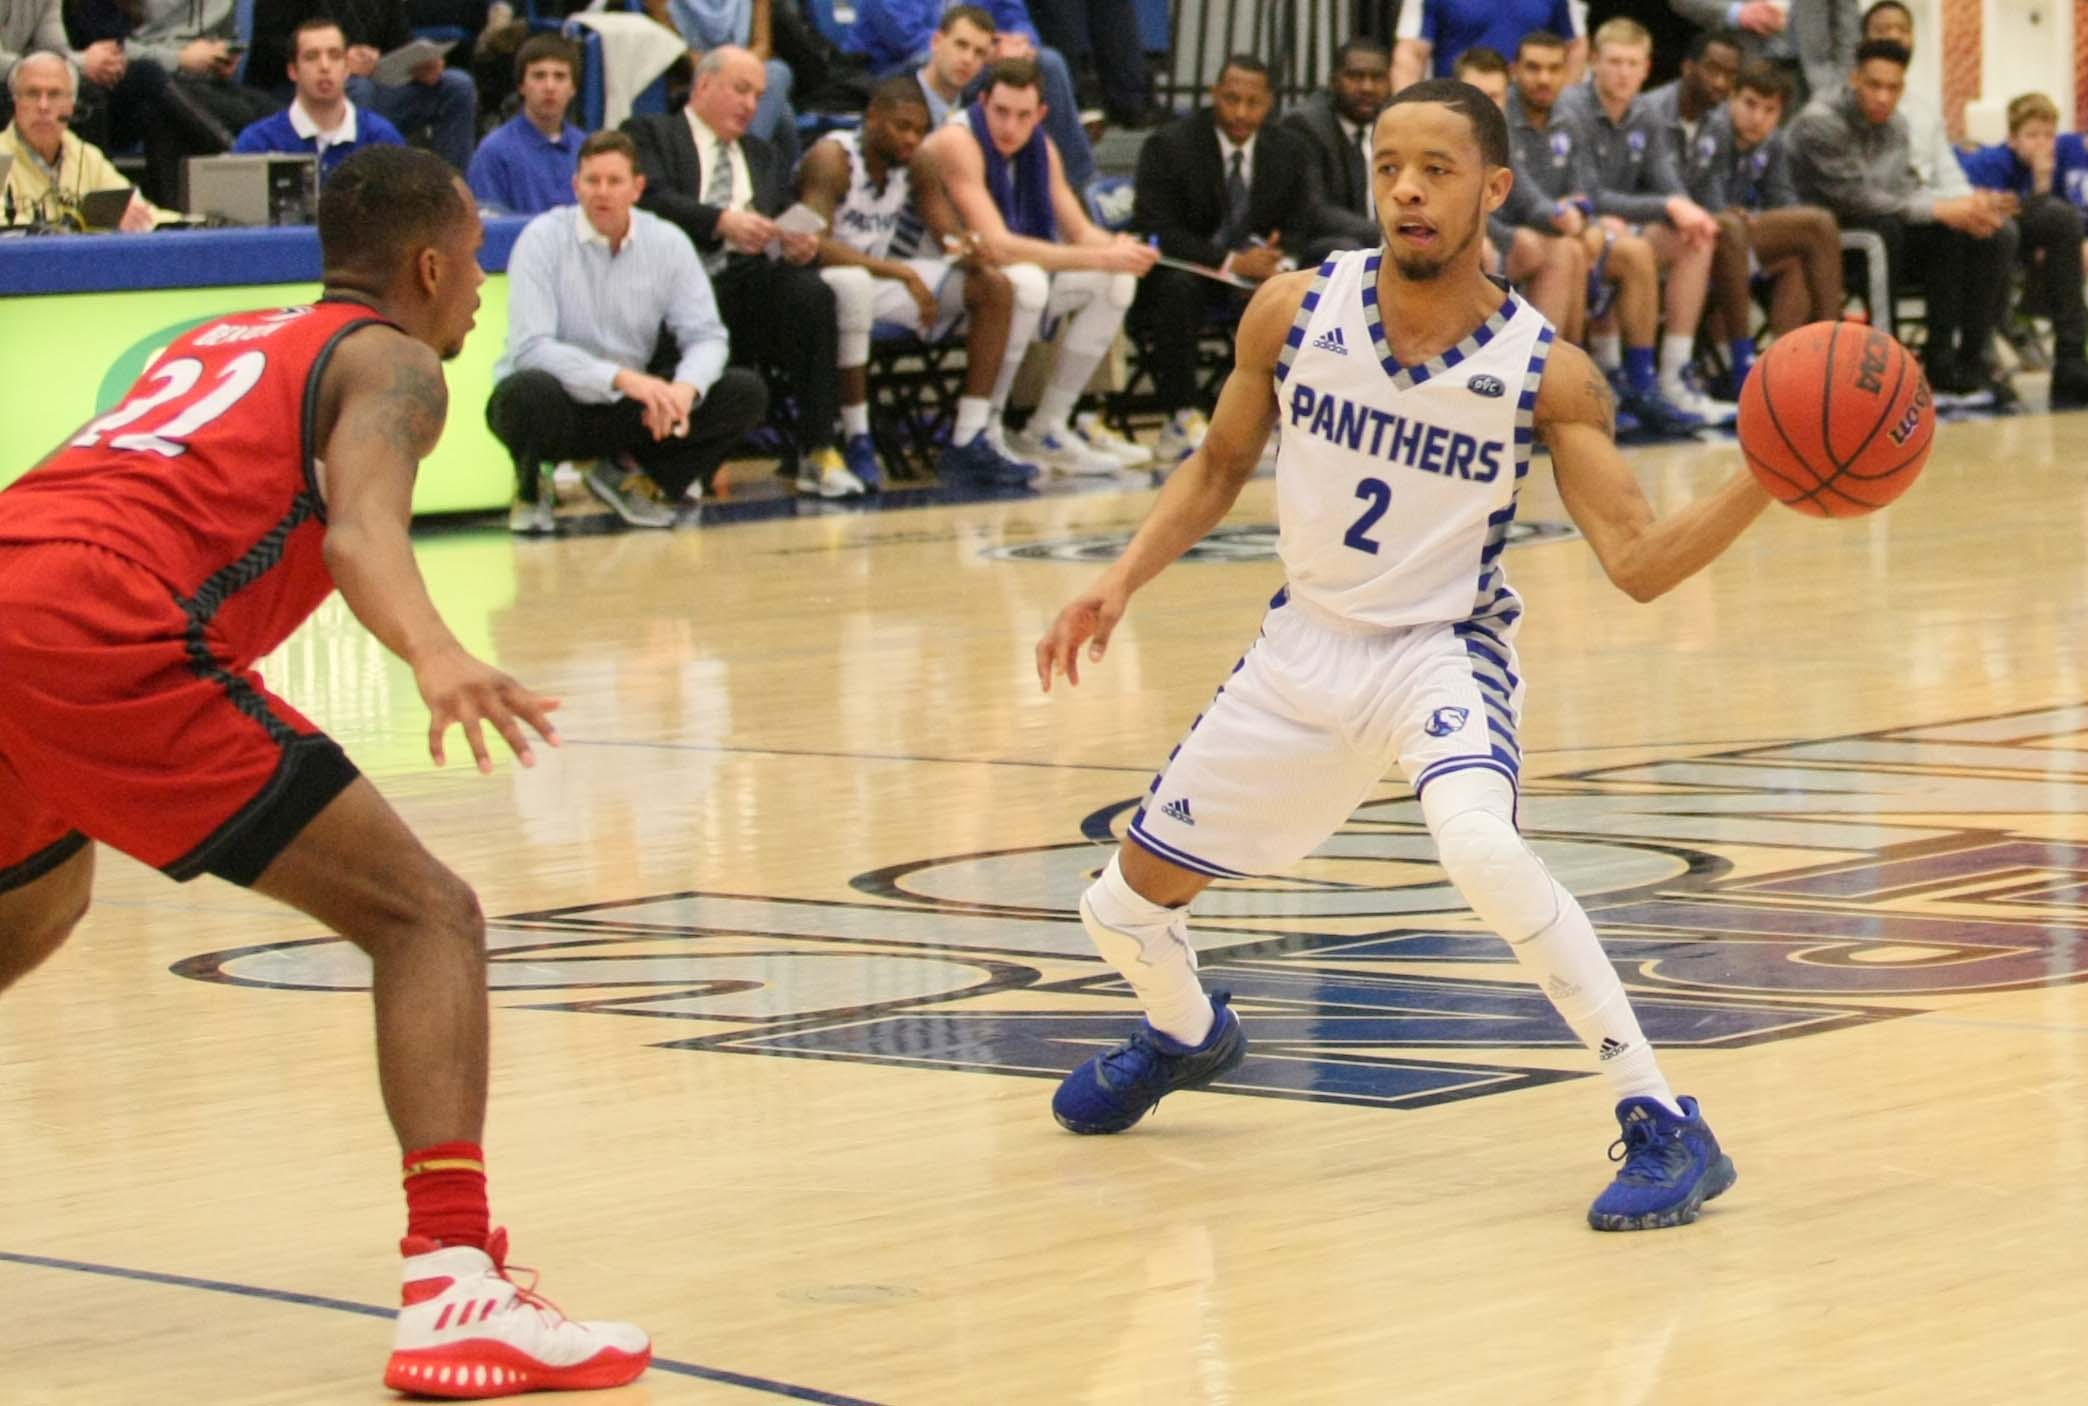 Junior guard Terrell Lewis passes to an open teammate Saturday, Jan. 28 at Lantz Arena. The Panthers defeated the visiting Cougars 75-60.